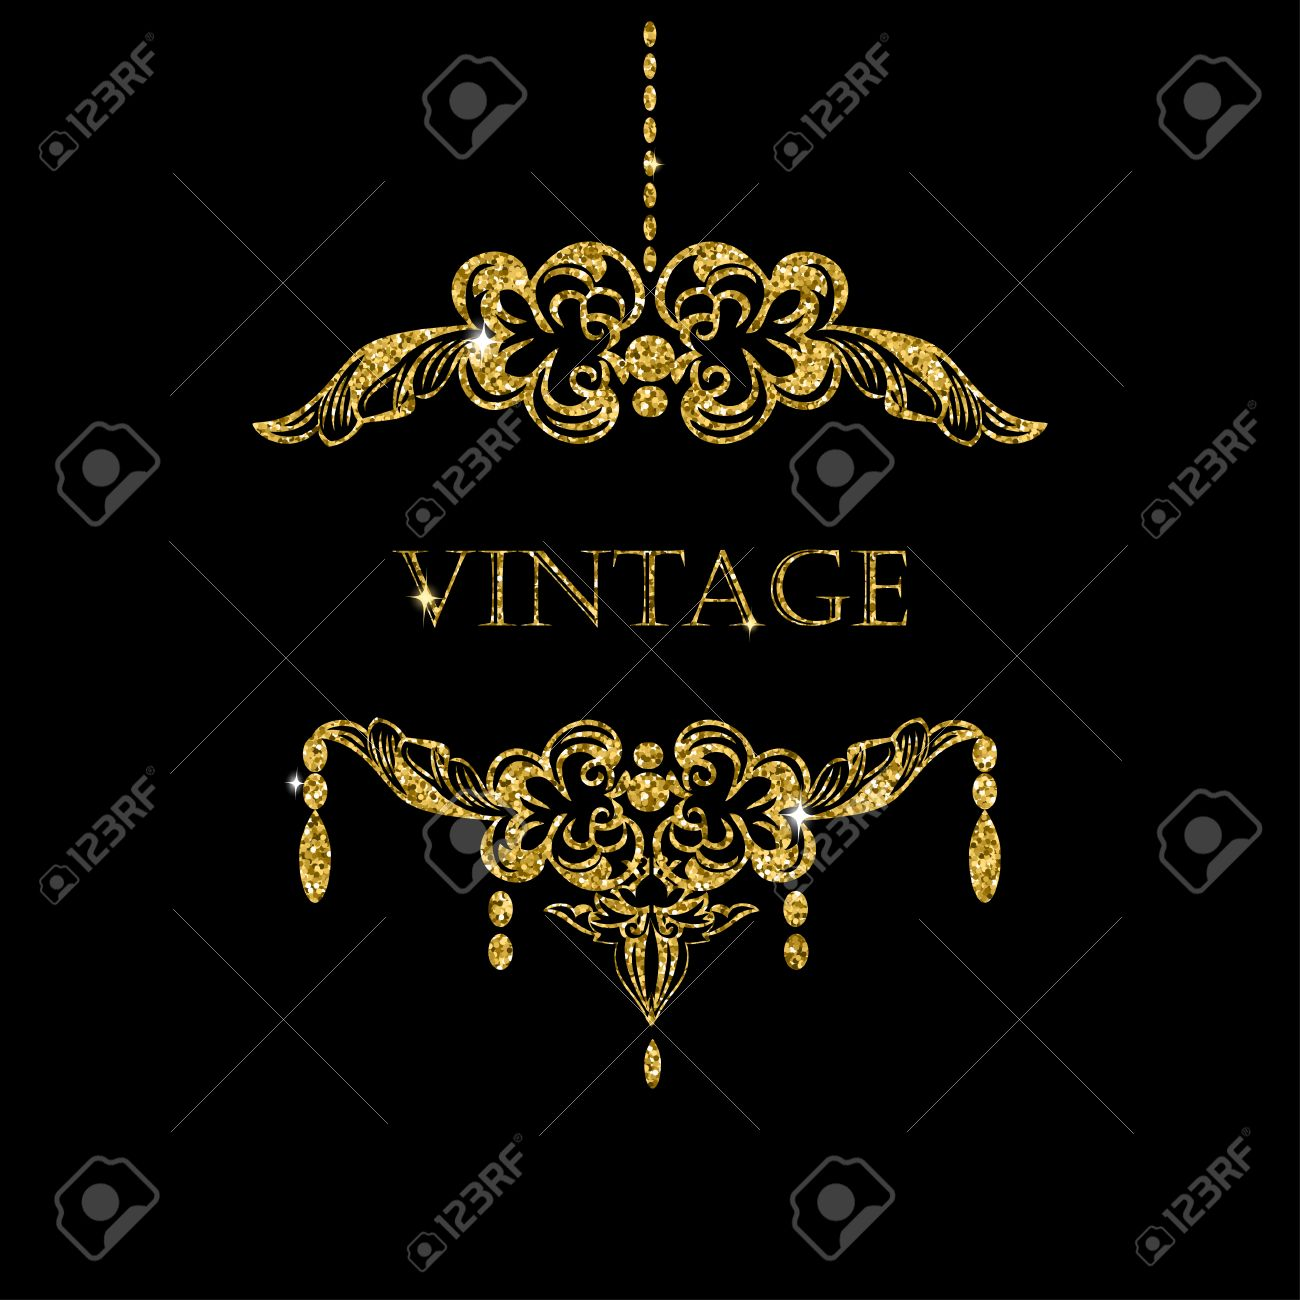 Gold Glitter Chandelier Silhouettewith Candles On Black Background Vintage Frame With Place For Your Text